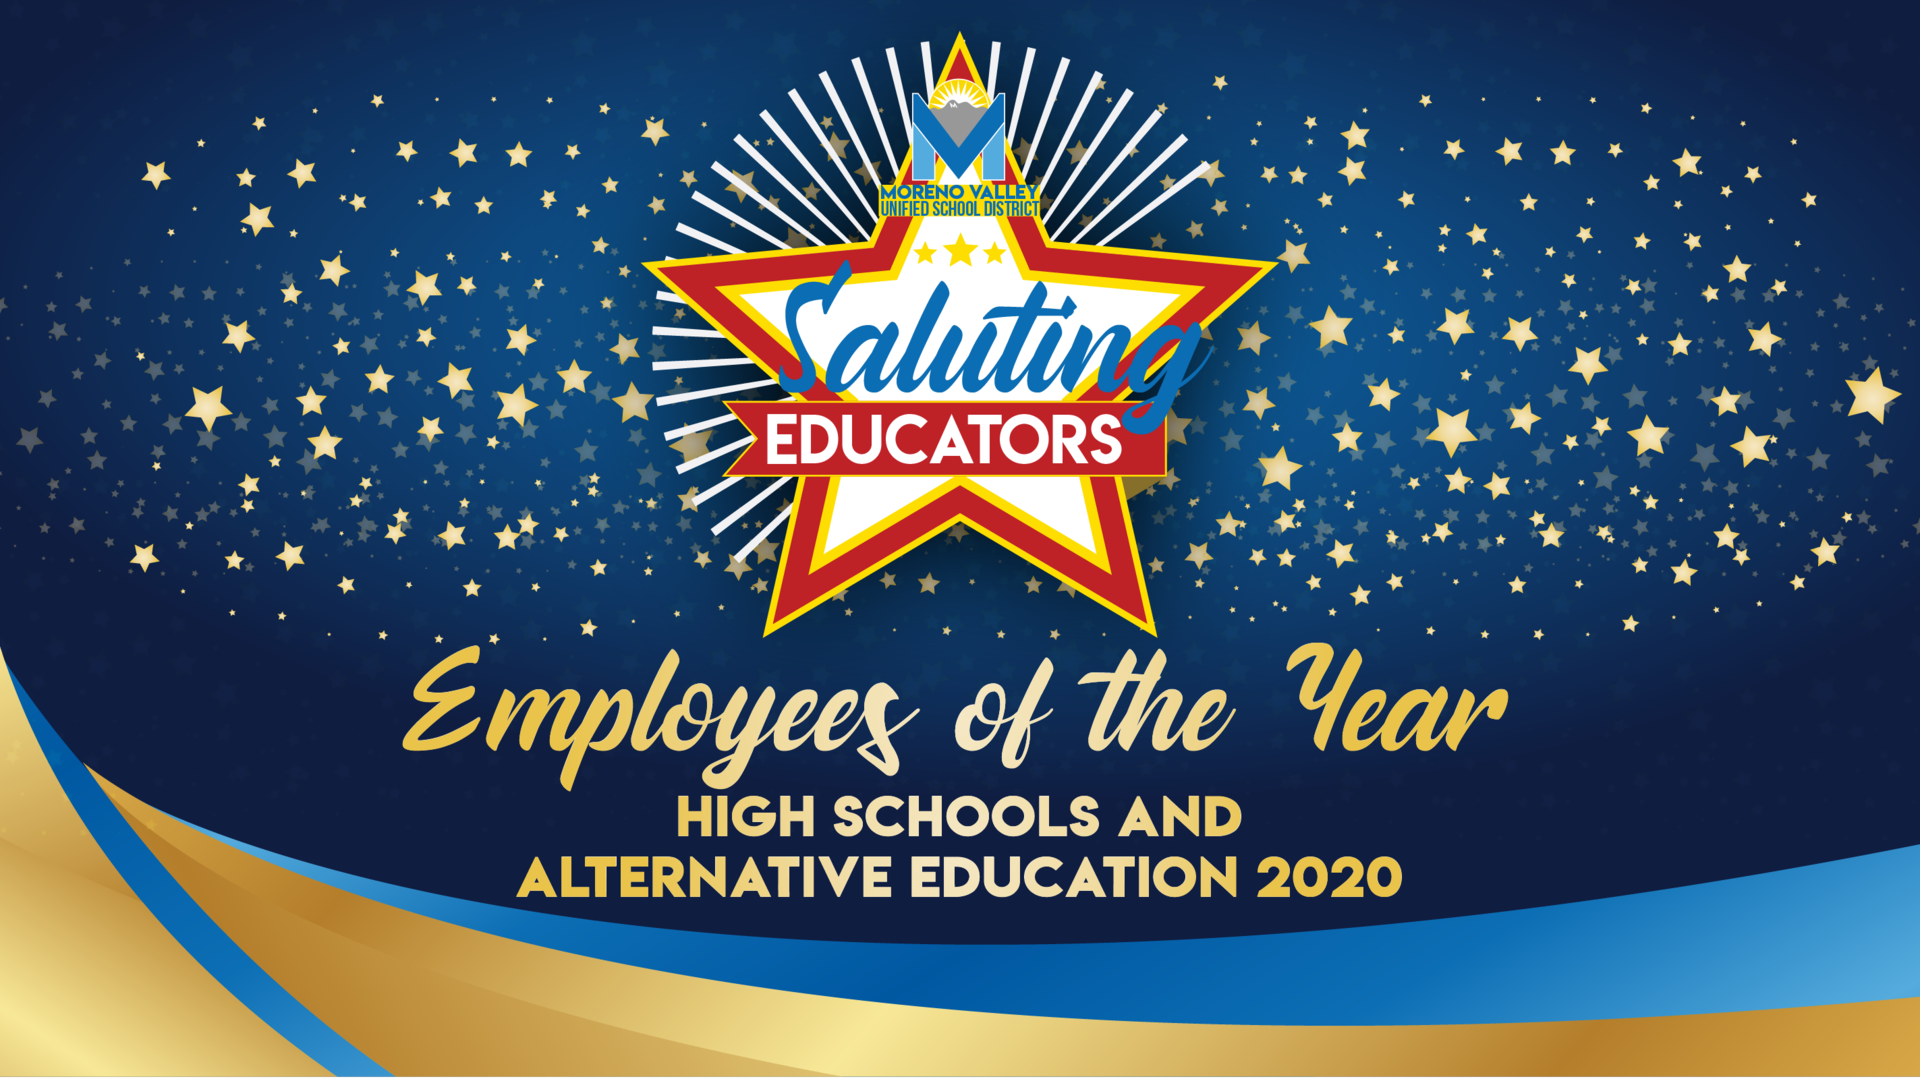 Click here for high school and alternative education employees of the year